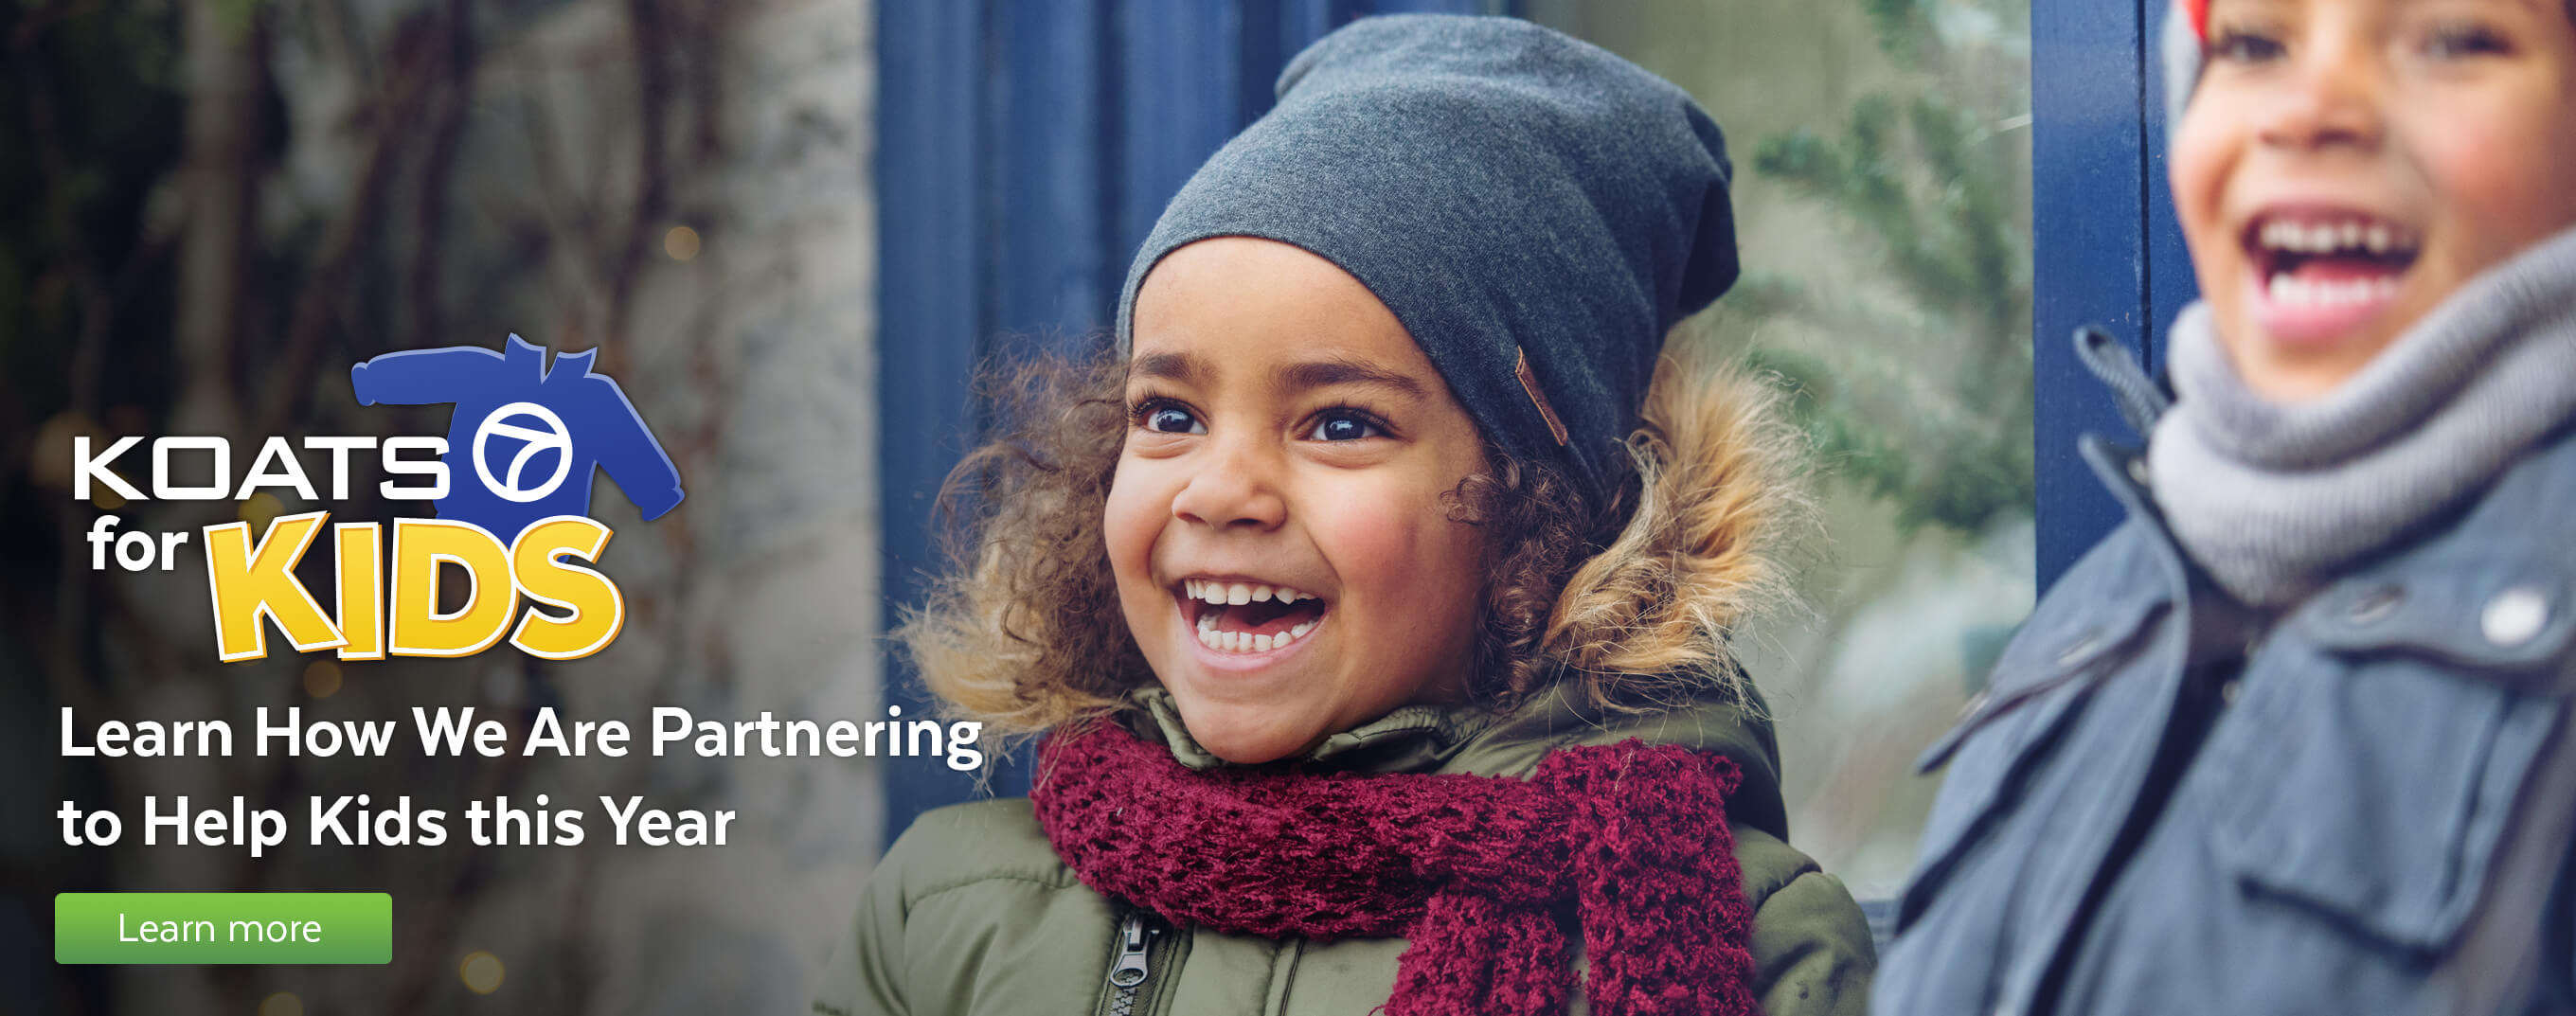 Learn how we are partnering to help kids this year.